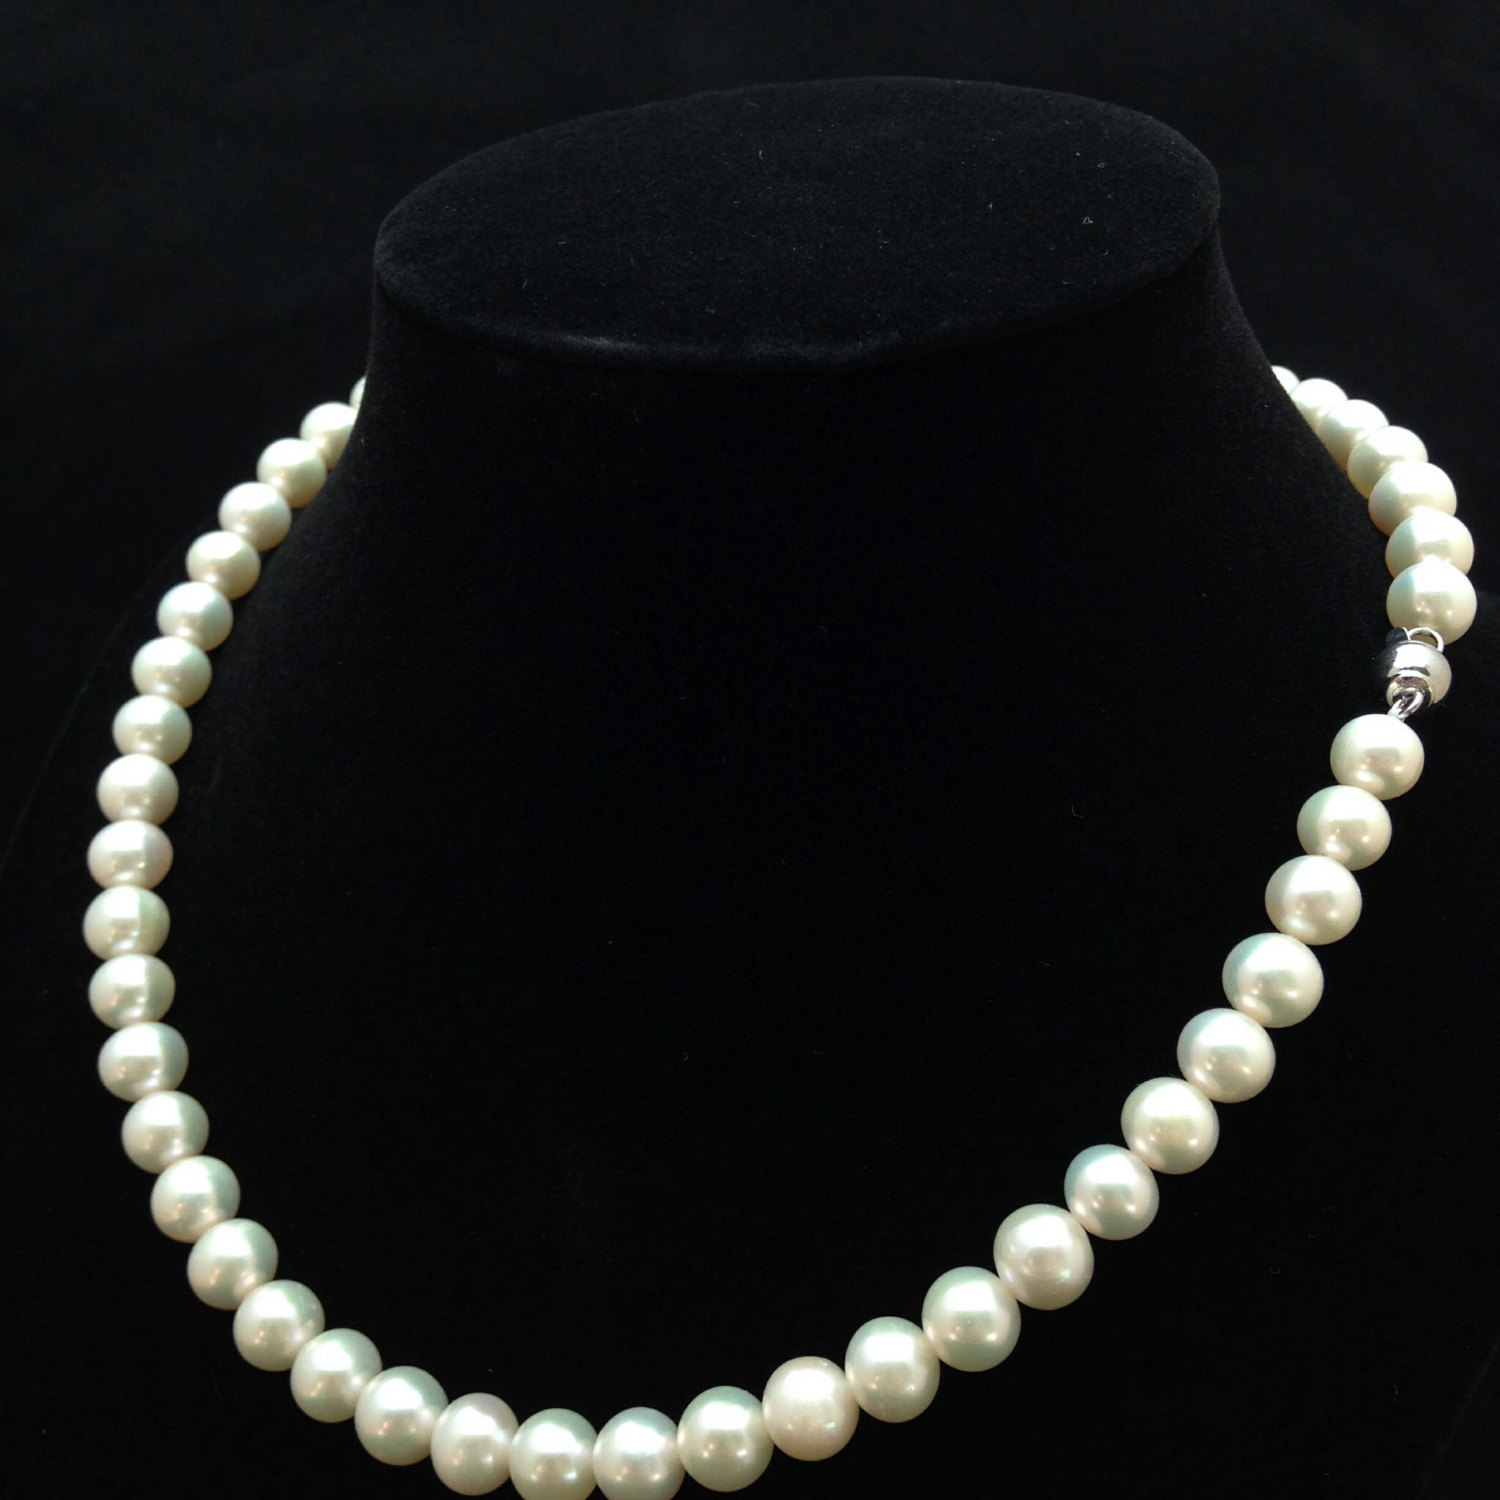 16 Inches Genuine Pearl Necklace, Aa+ Pearl Necklace, Genuine Pearl  Necklace, Free 7mm